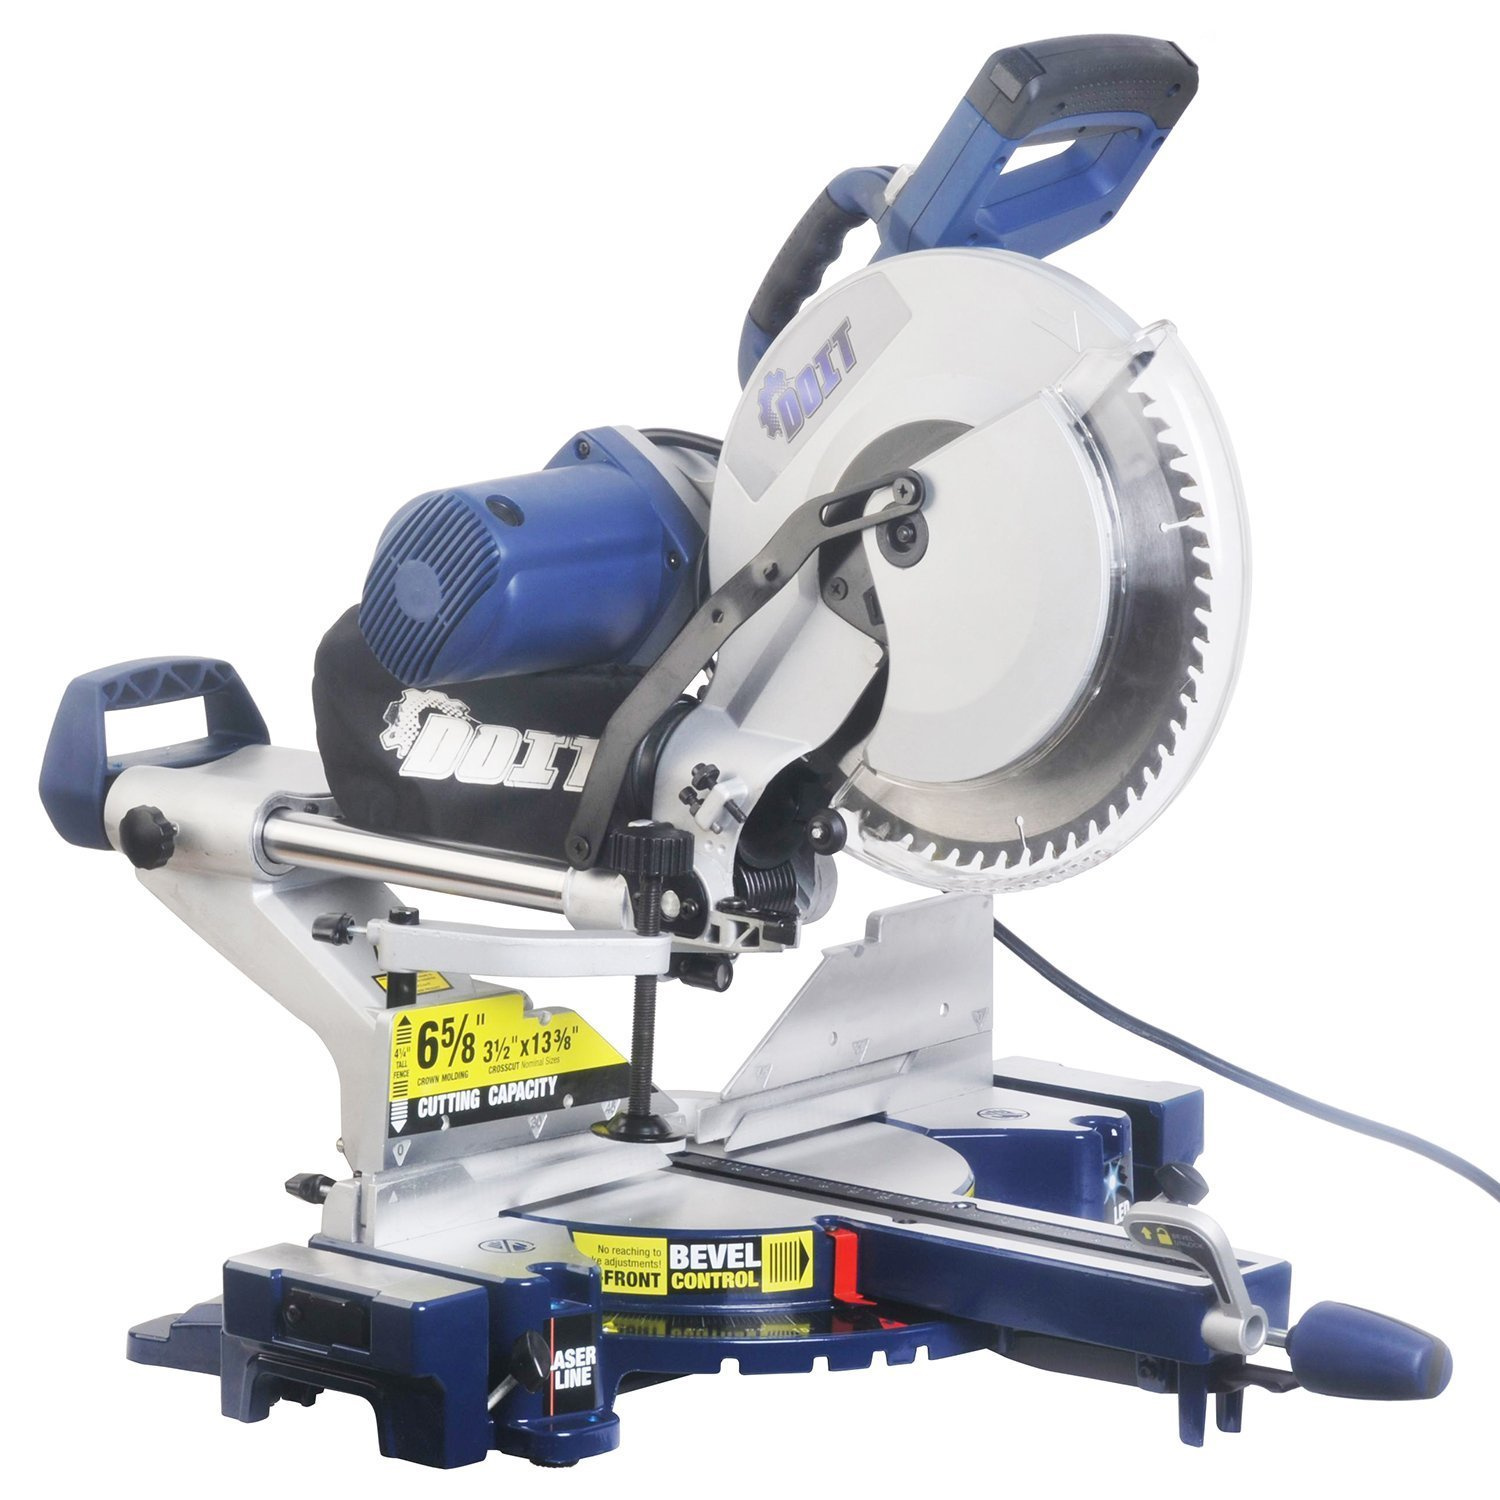 Ainfox 15 Amp 12-Inch Dual Bevel Sliding Compound Miter Saw, Laser and LED Work Light